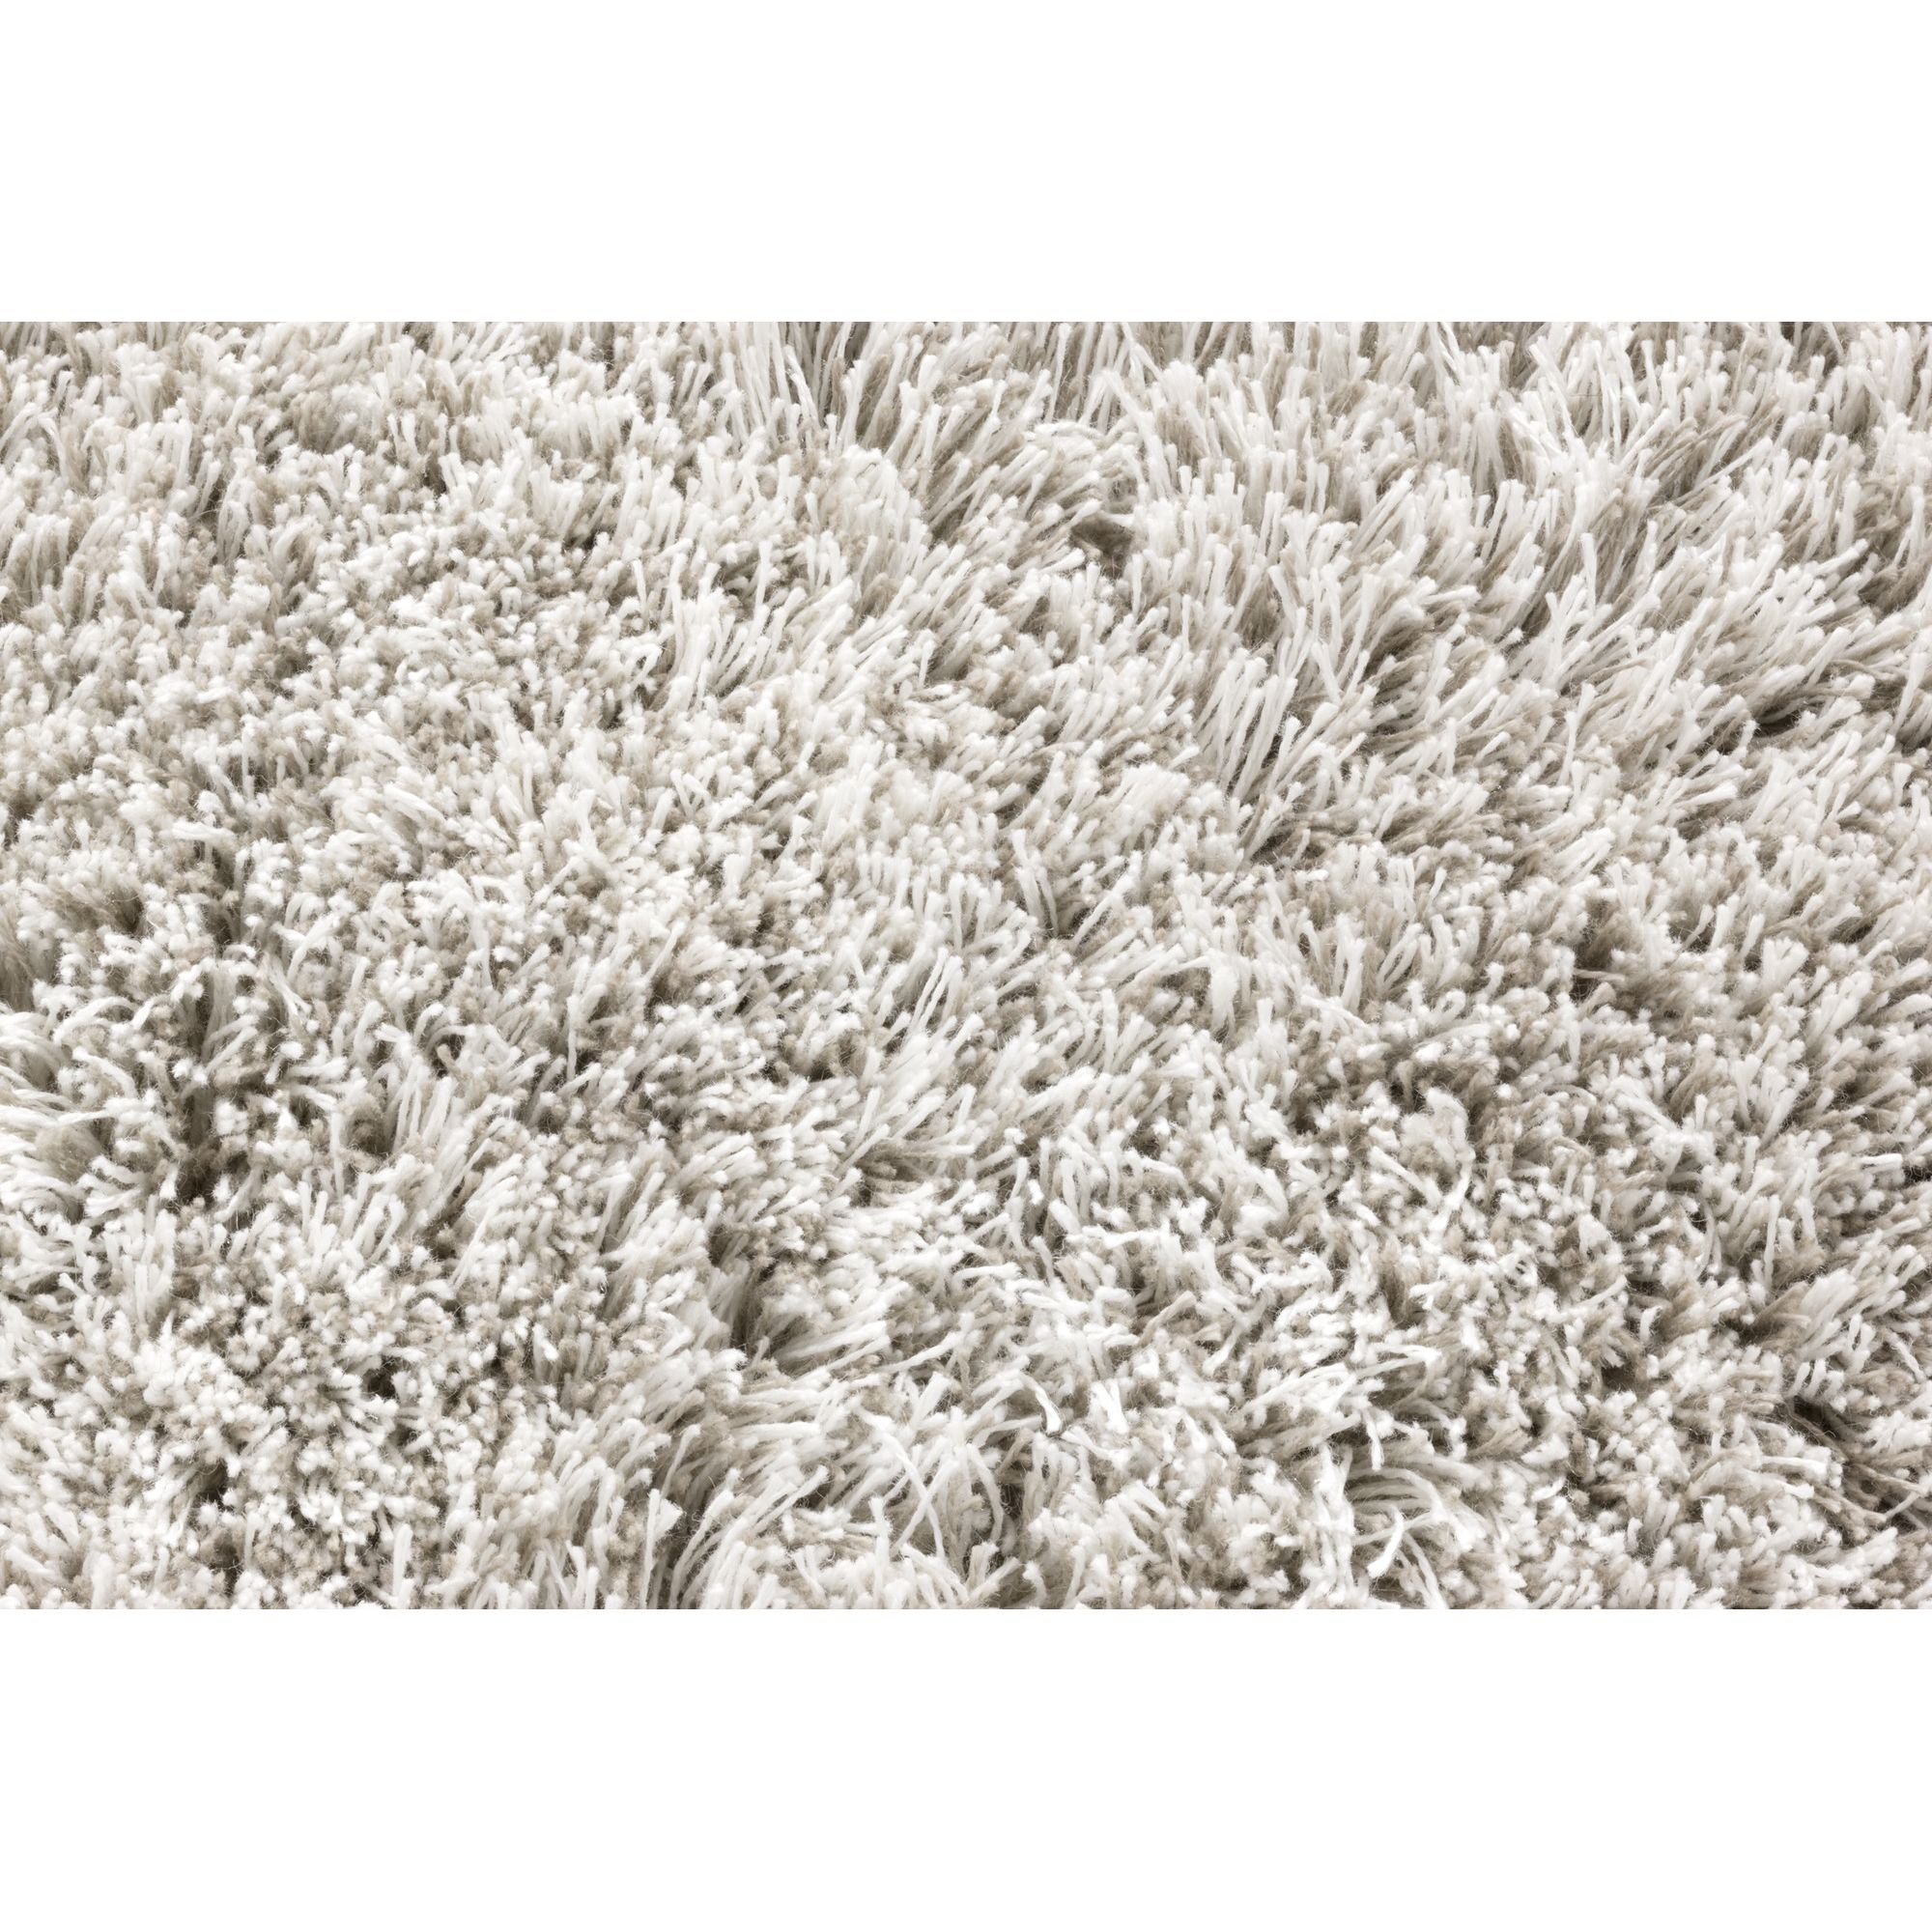 Linie Design Timeless White Shag Rug - 200cm x 140cm at Tesco Direct